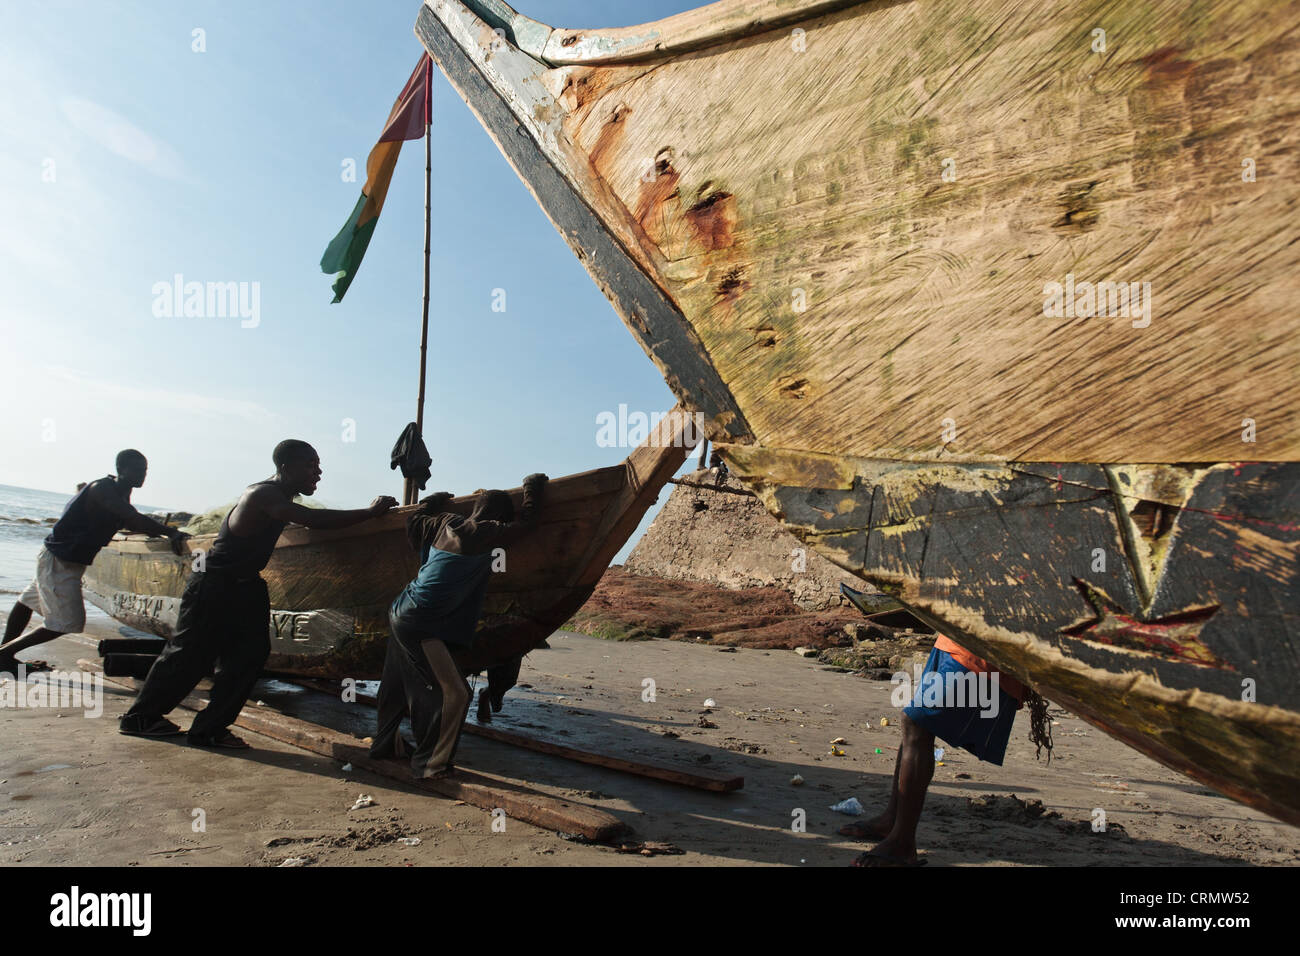 Fishermen pulling their boat on the beach in Cape Coast, Ghana - Stock Image